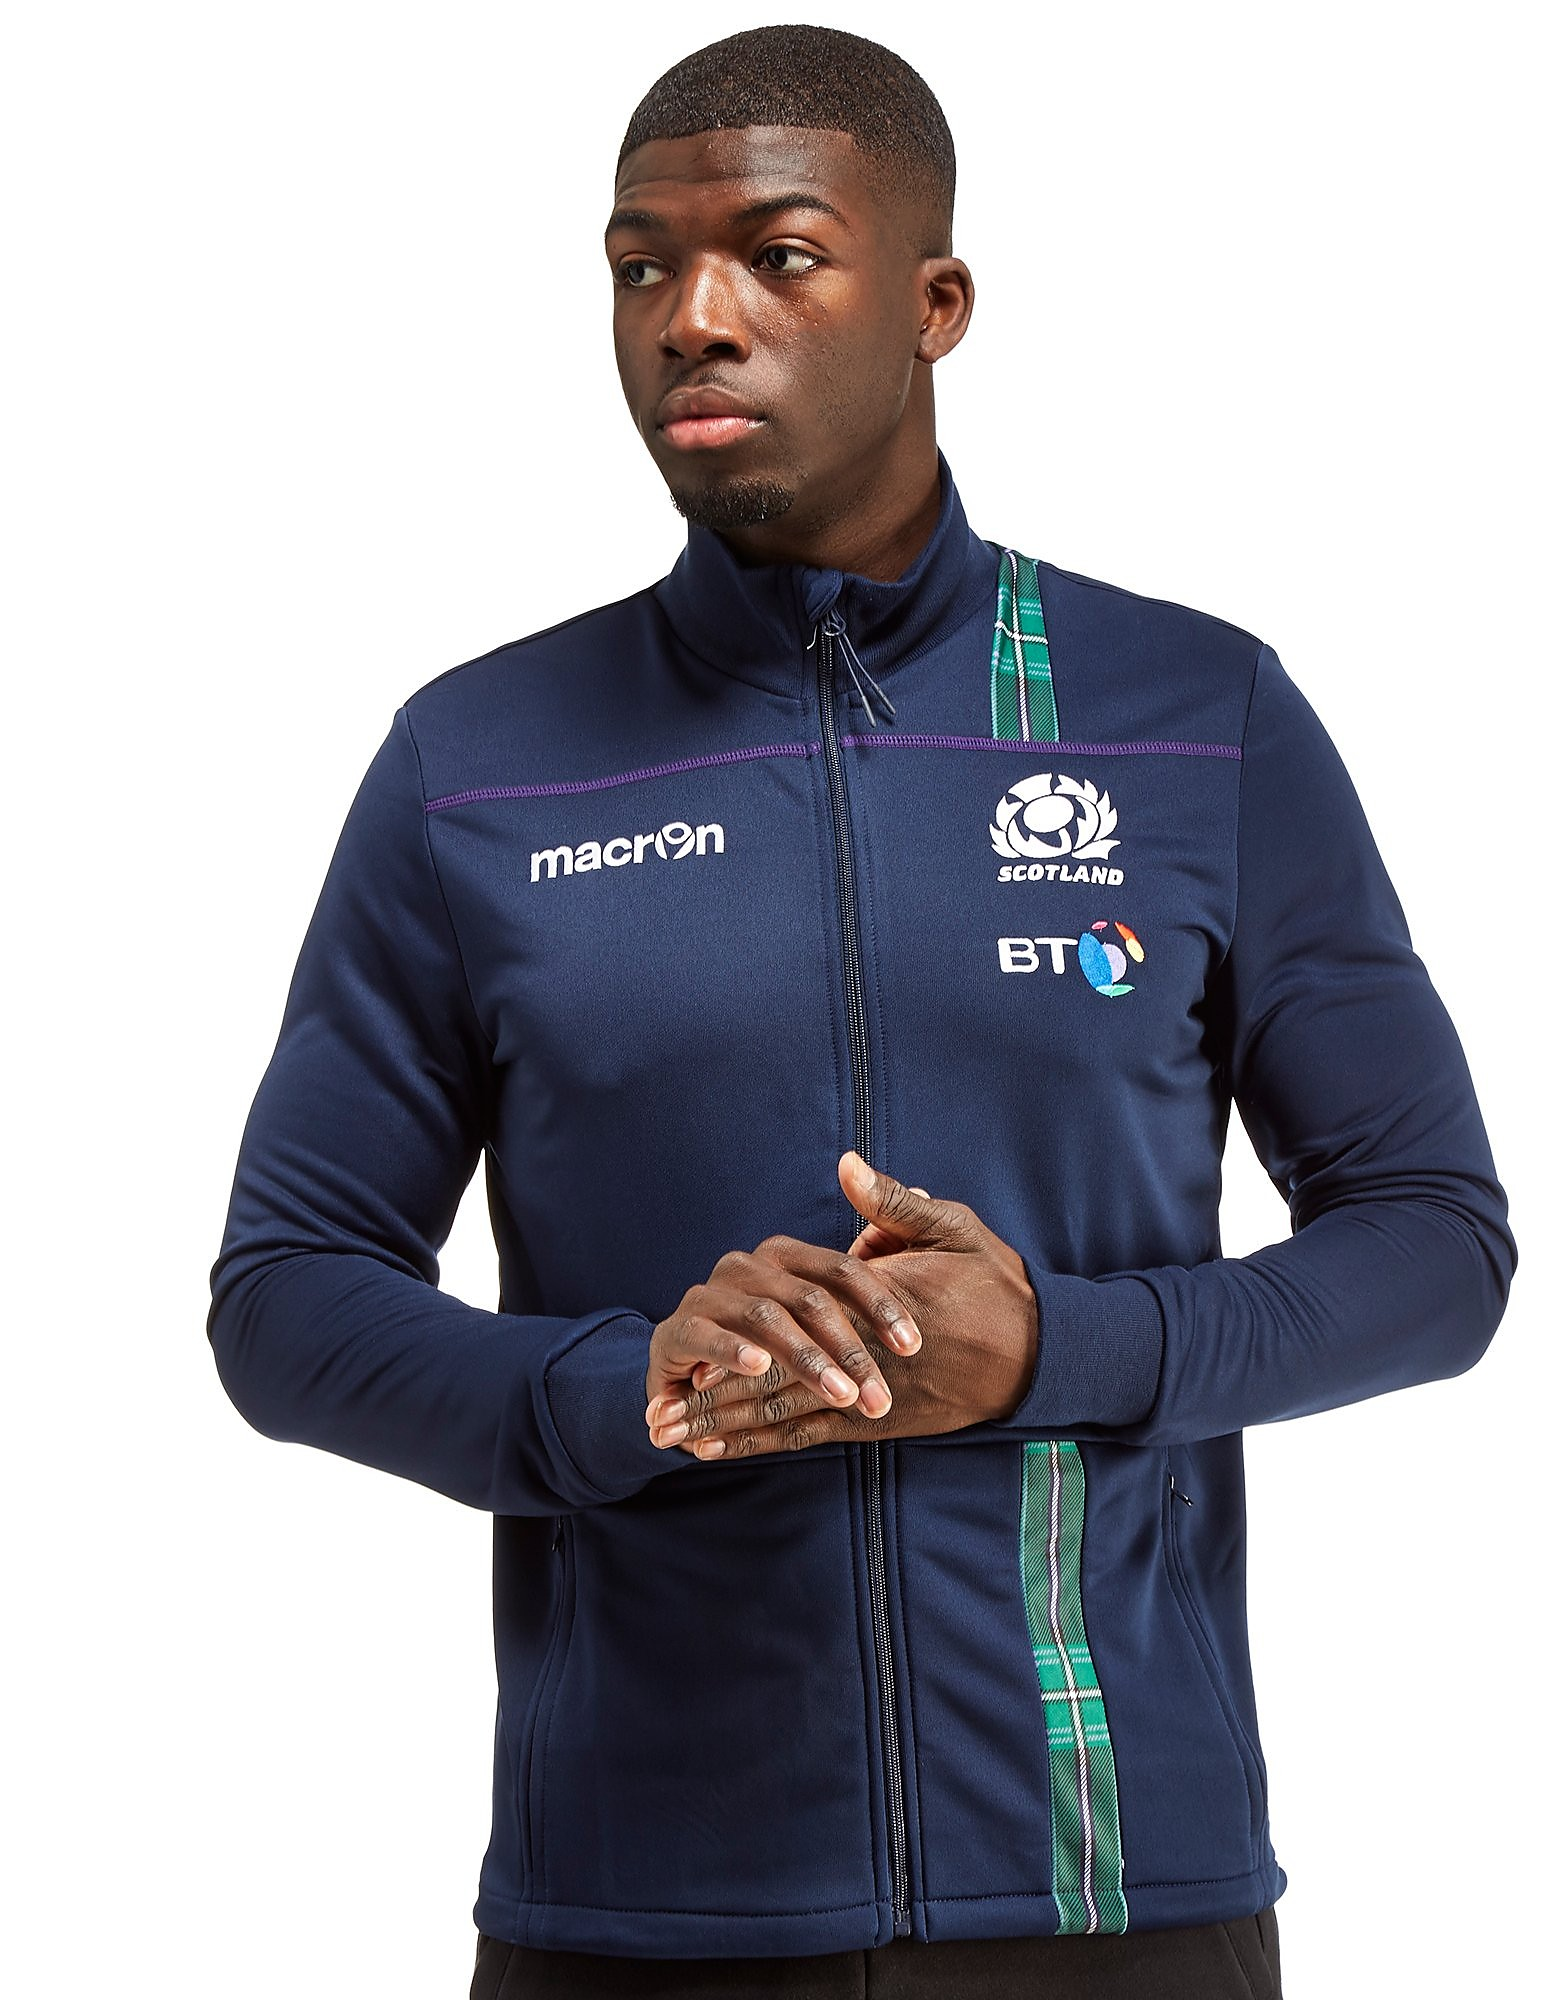 Macron Scotland Rugby 2016/17 Anthem Jacket